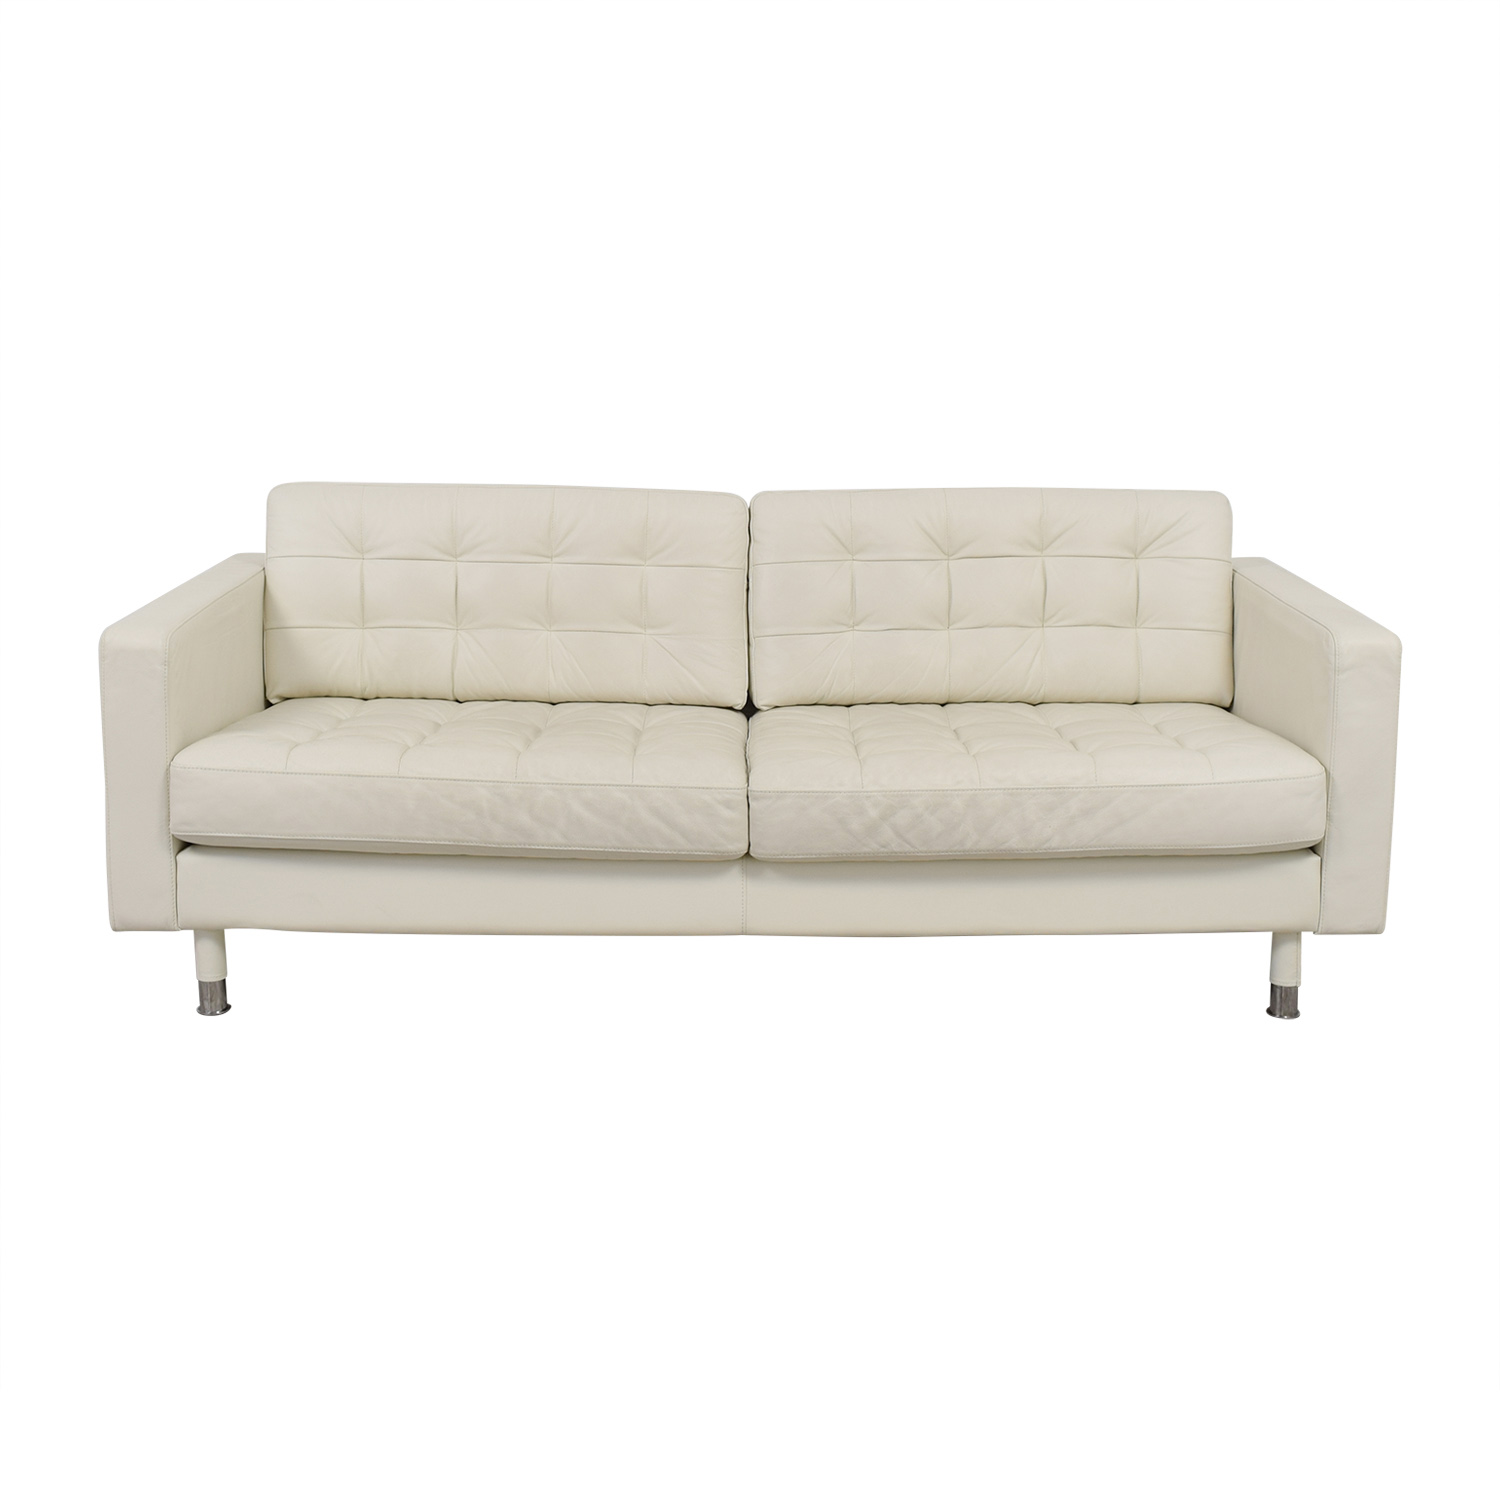 Ikea Tufted White Leather Couch